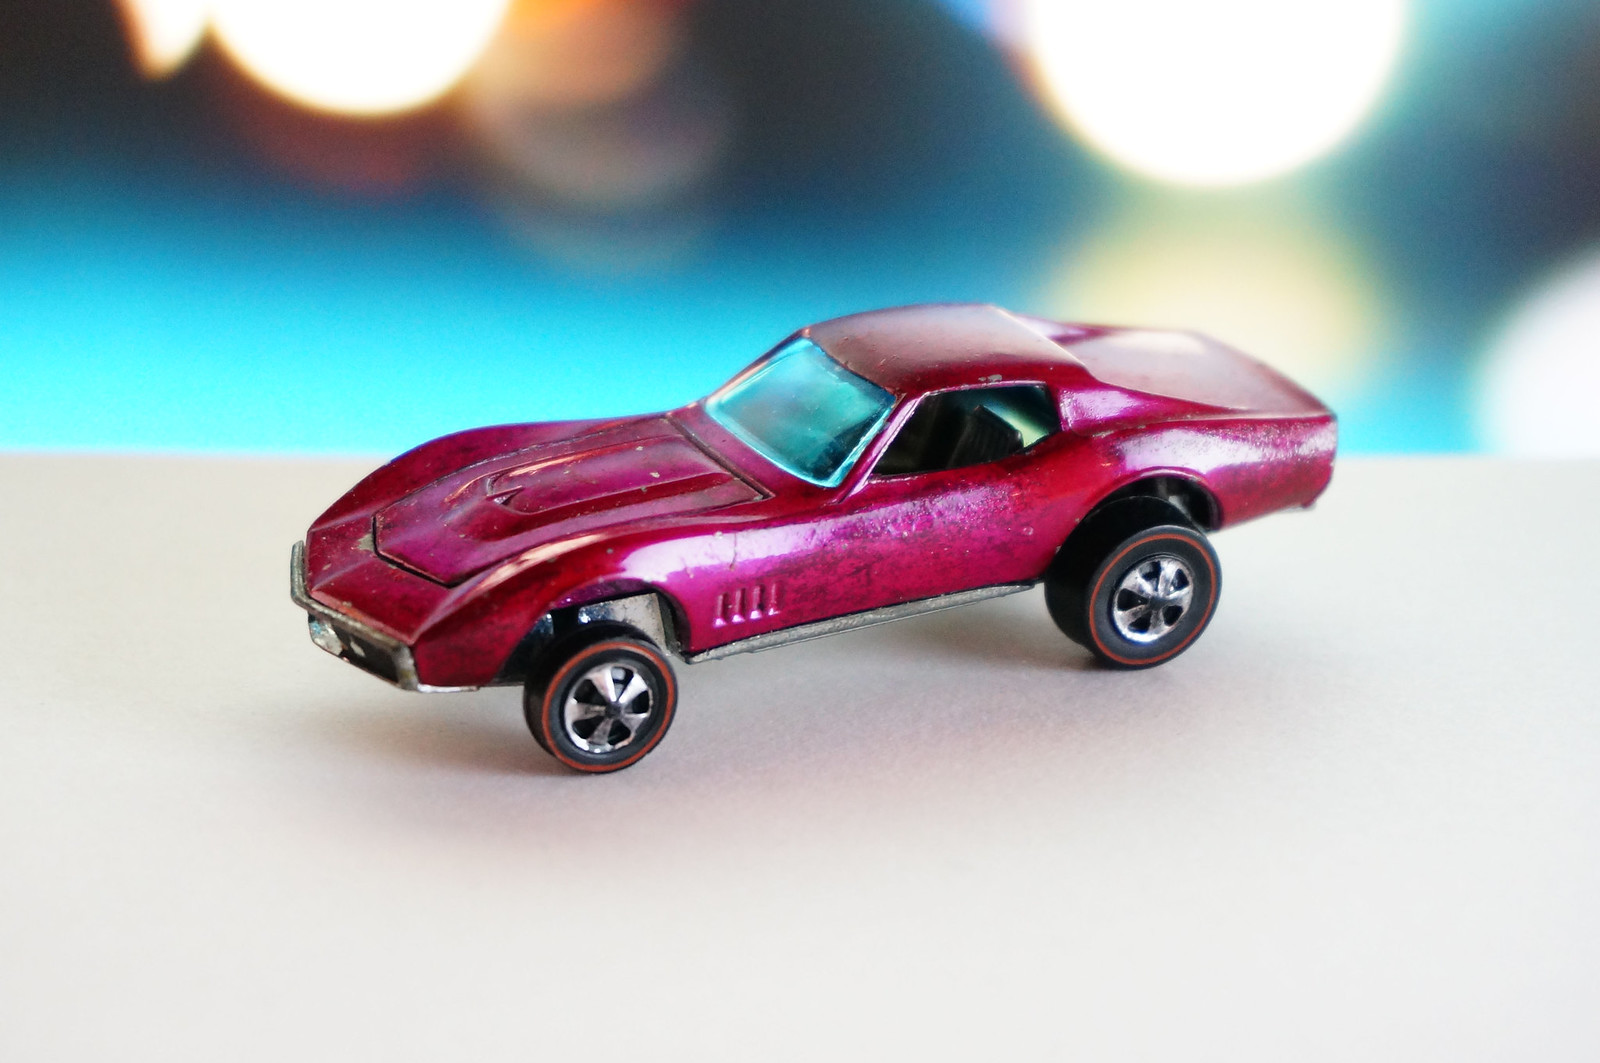 Hot Wheels Redline Rare Creamy Pink Custom Corvette HK